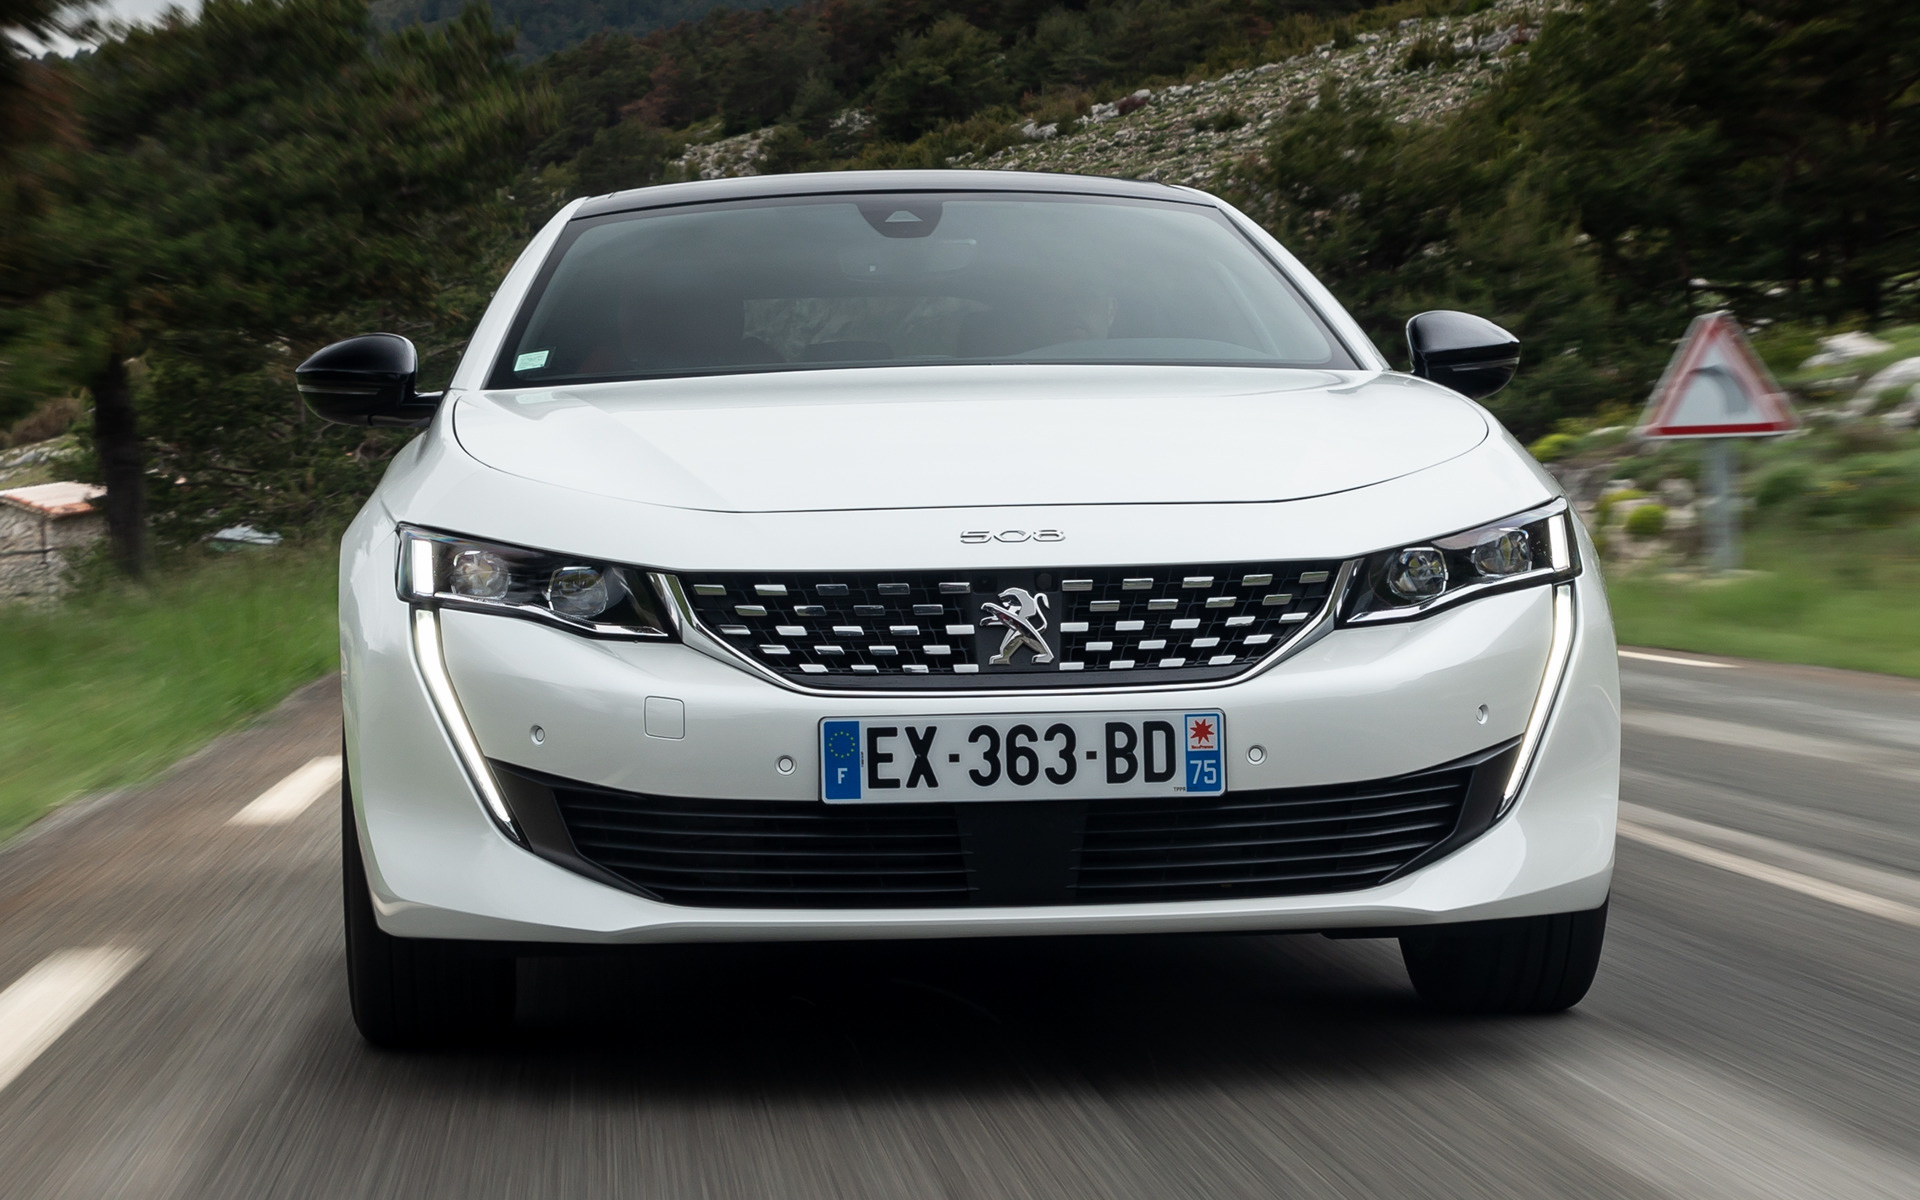 2018 Peugeot 508 GT Line   Wallpapers and HD Images Car Pixel 1920x1200